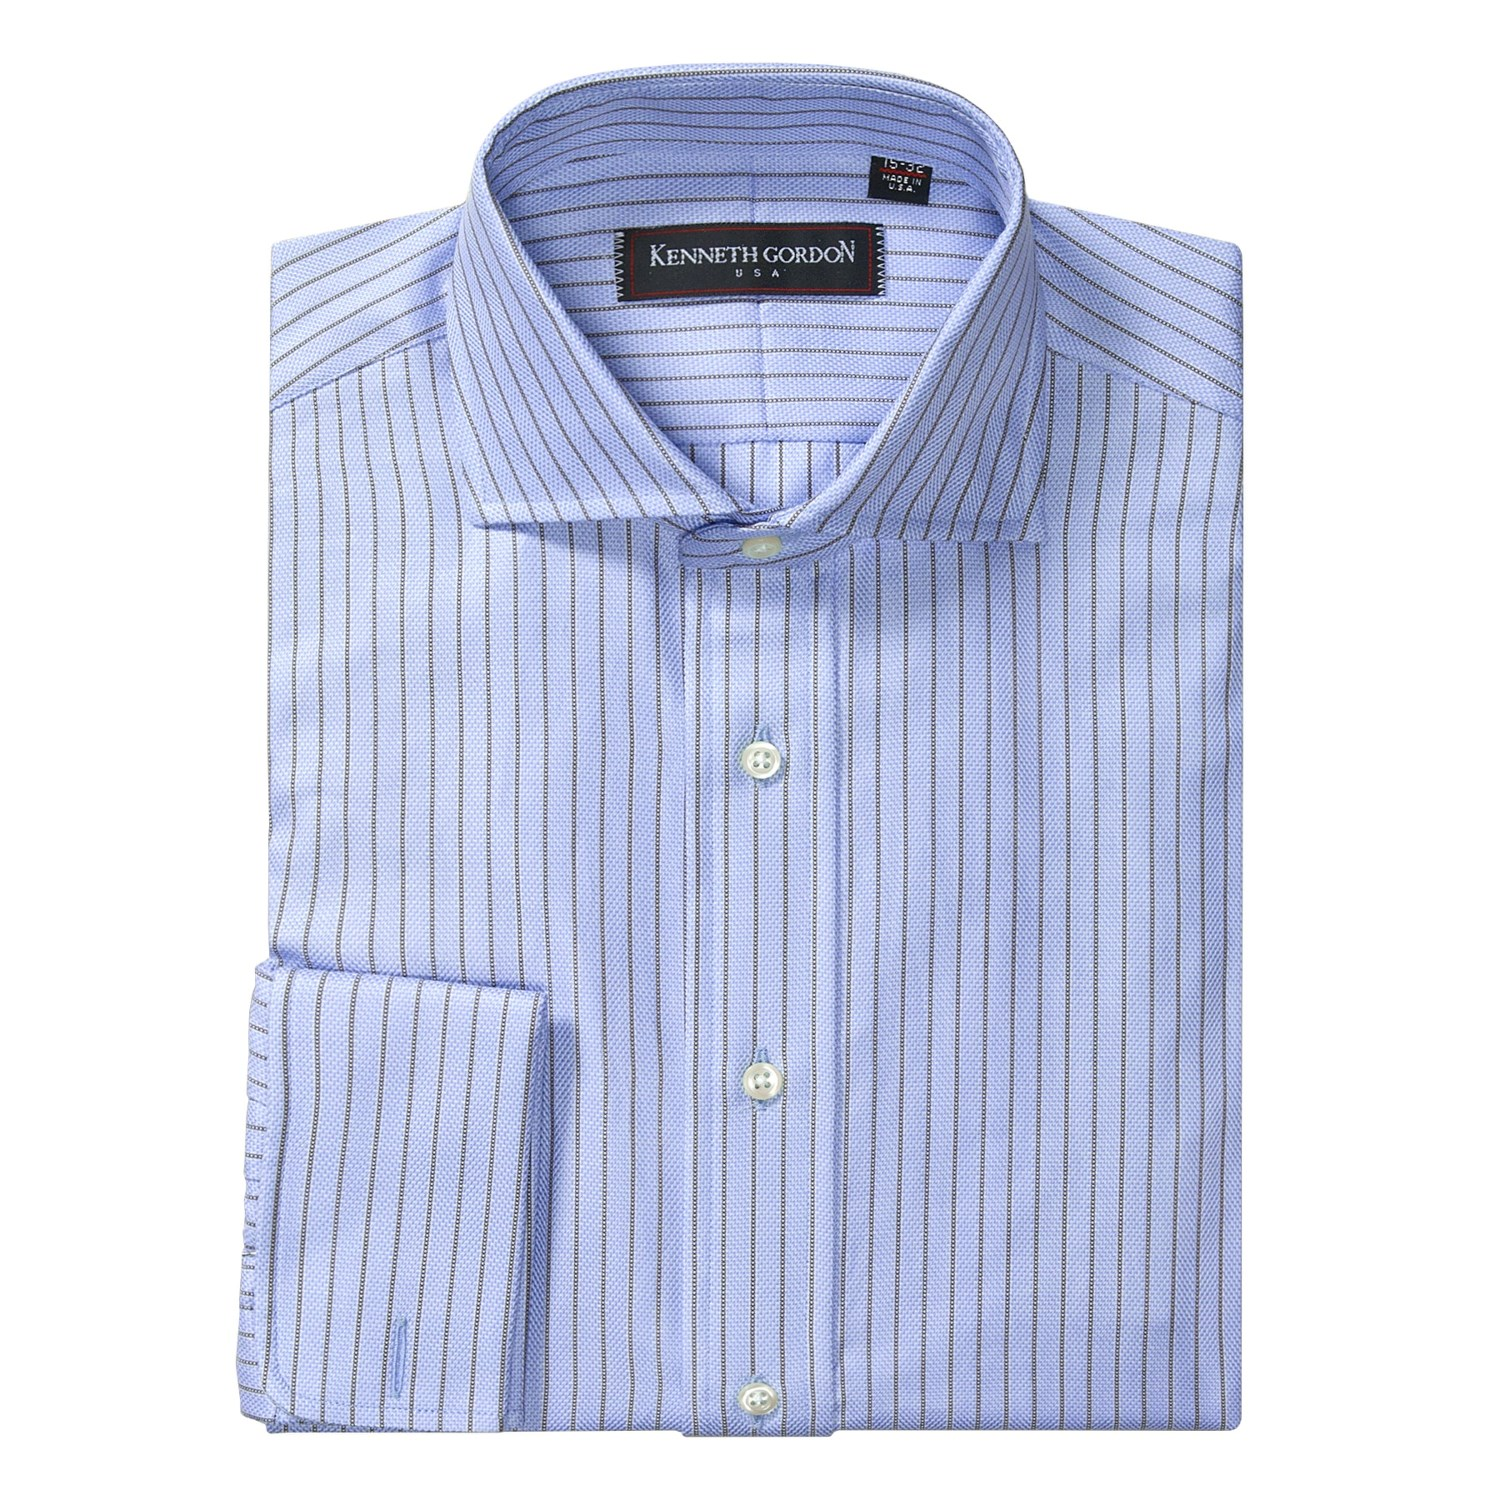 Mens Dress Shirts Shirts With French Cuffs Steven Land